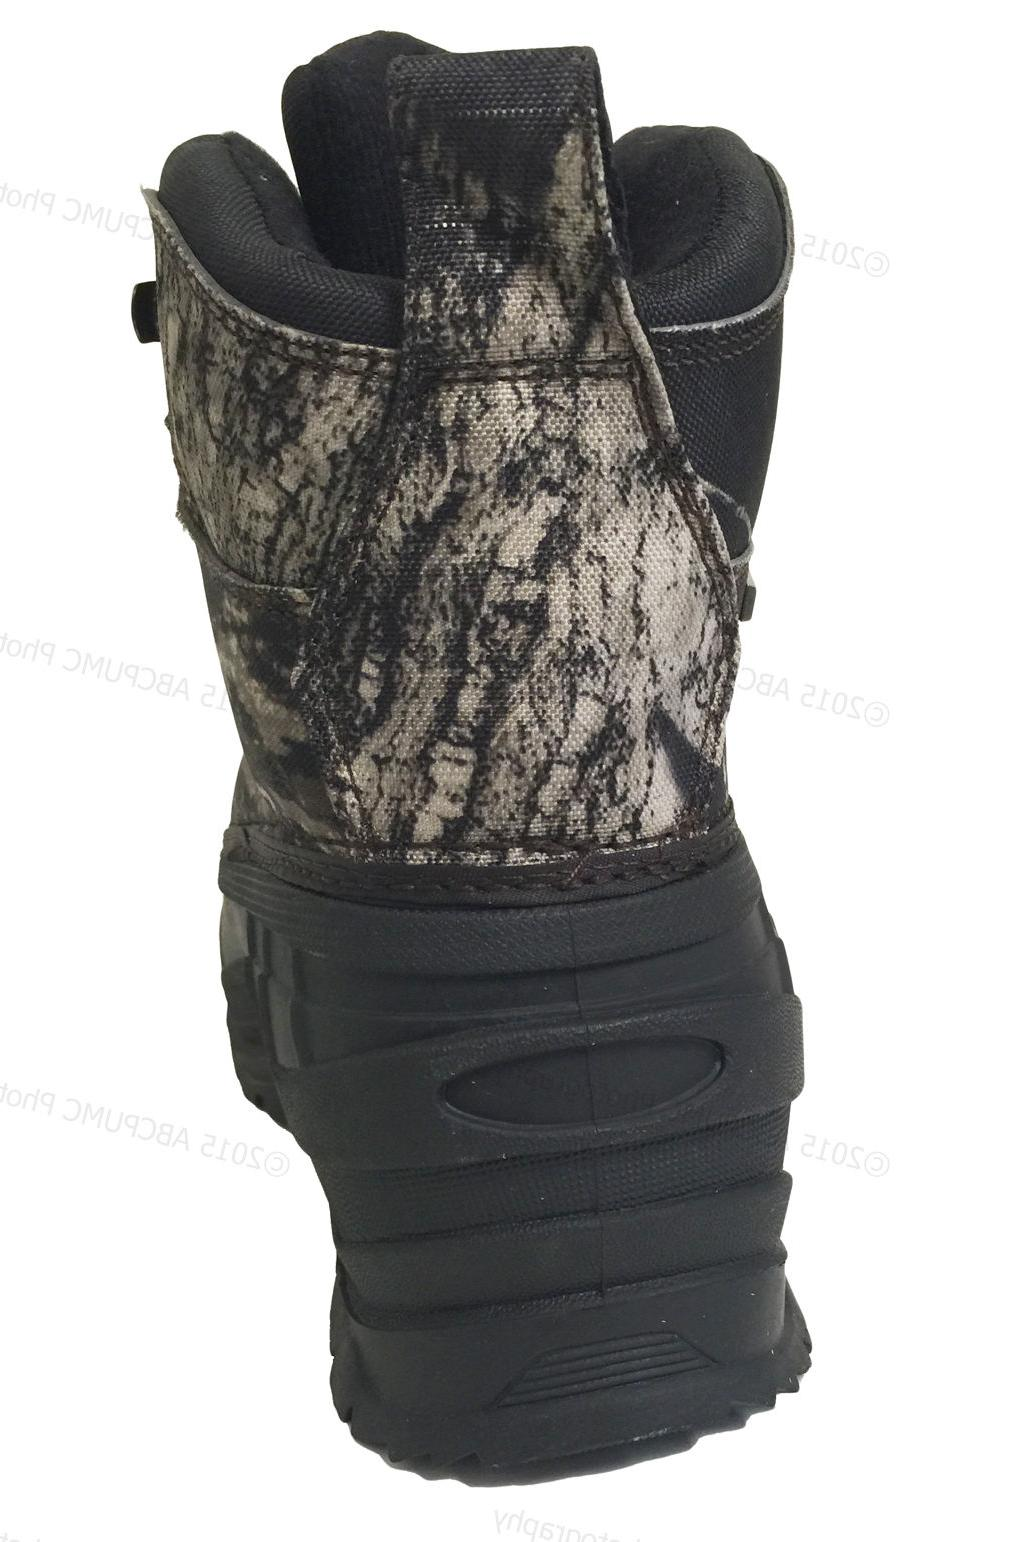 Mens Snow Boots Camouflage Waterproof Insulated Thermolite